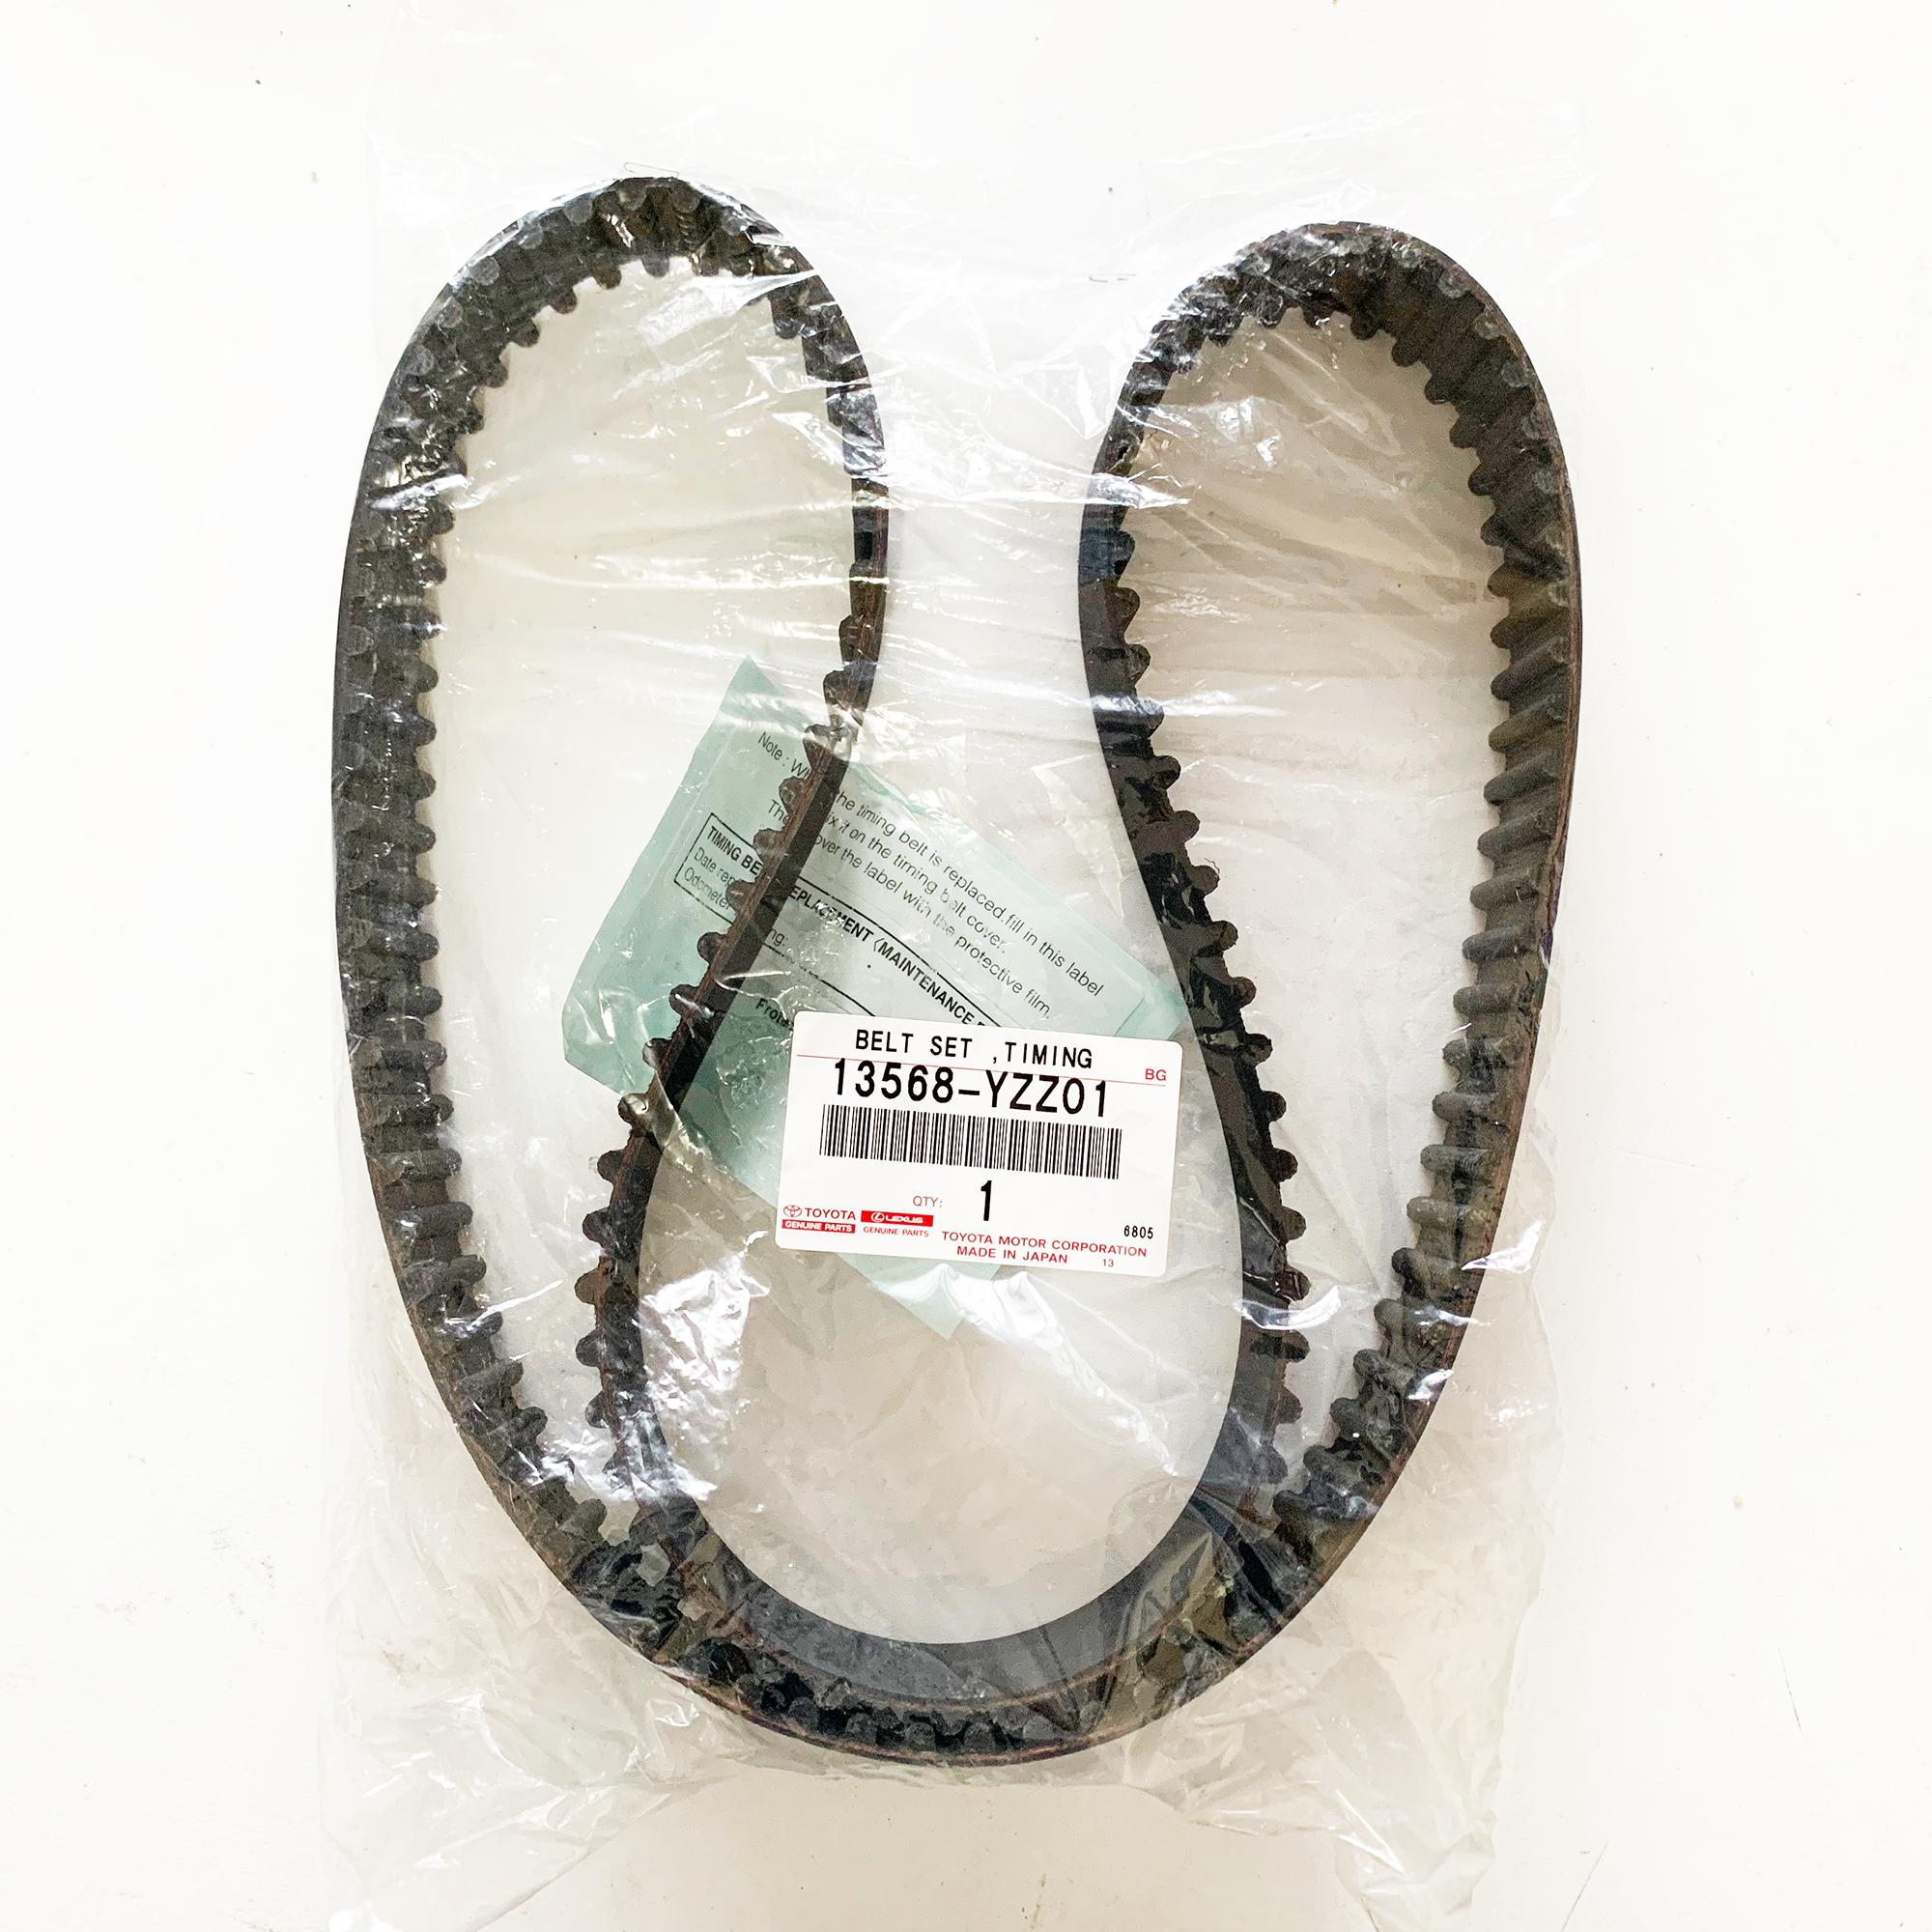 Timing Belt for sale - Car Timing Belt online brands, prices